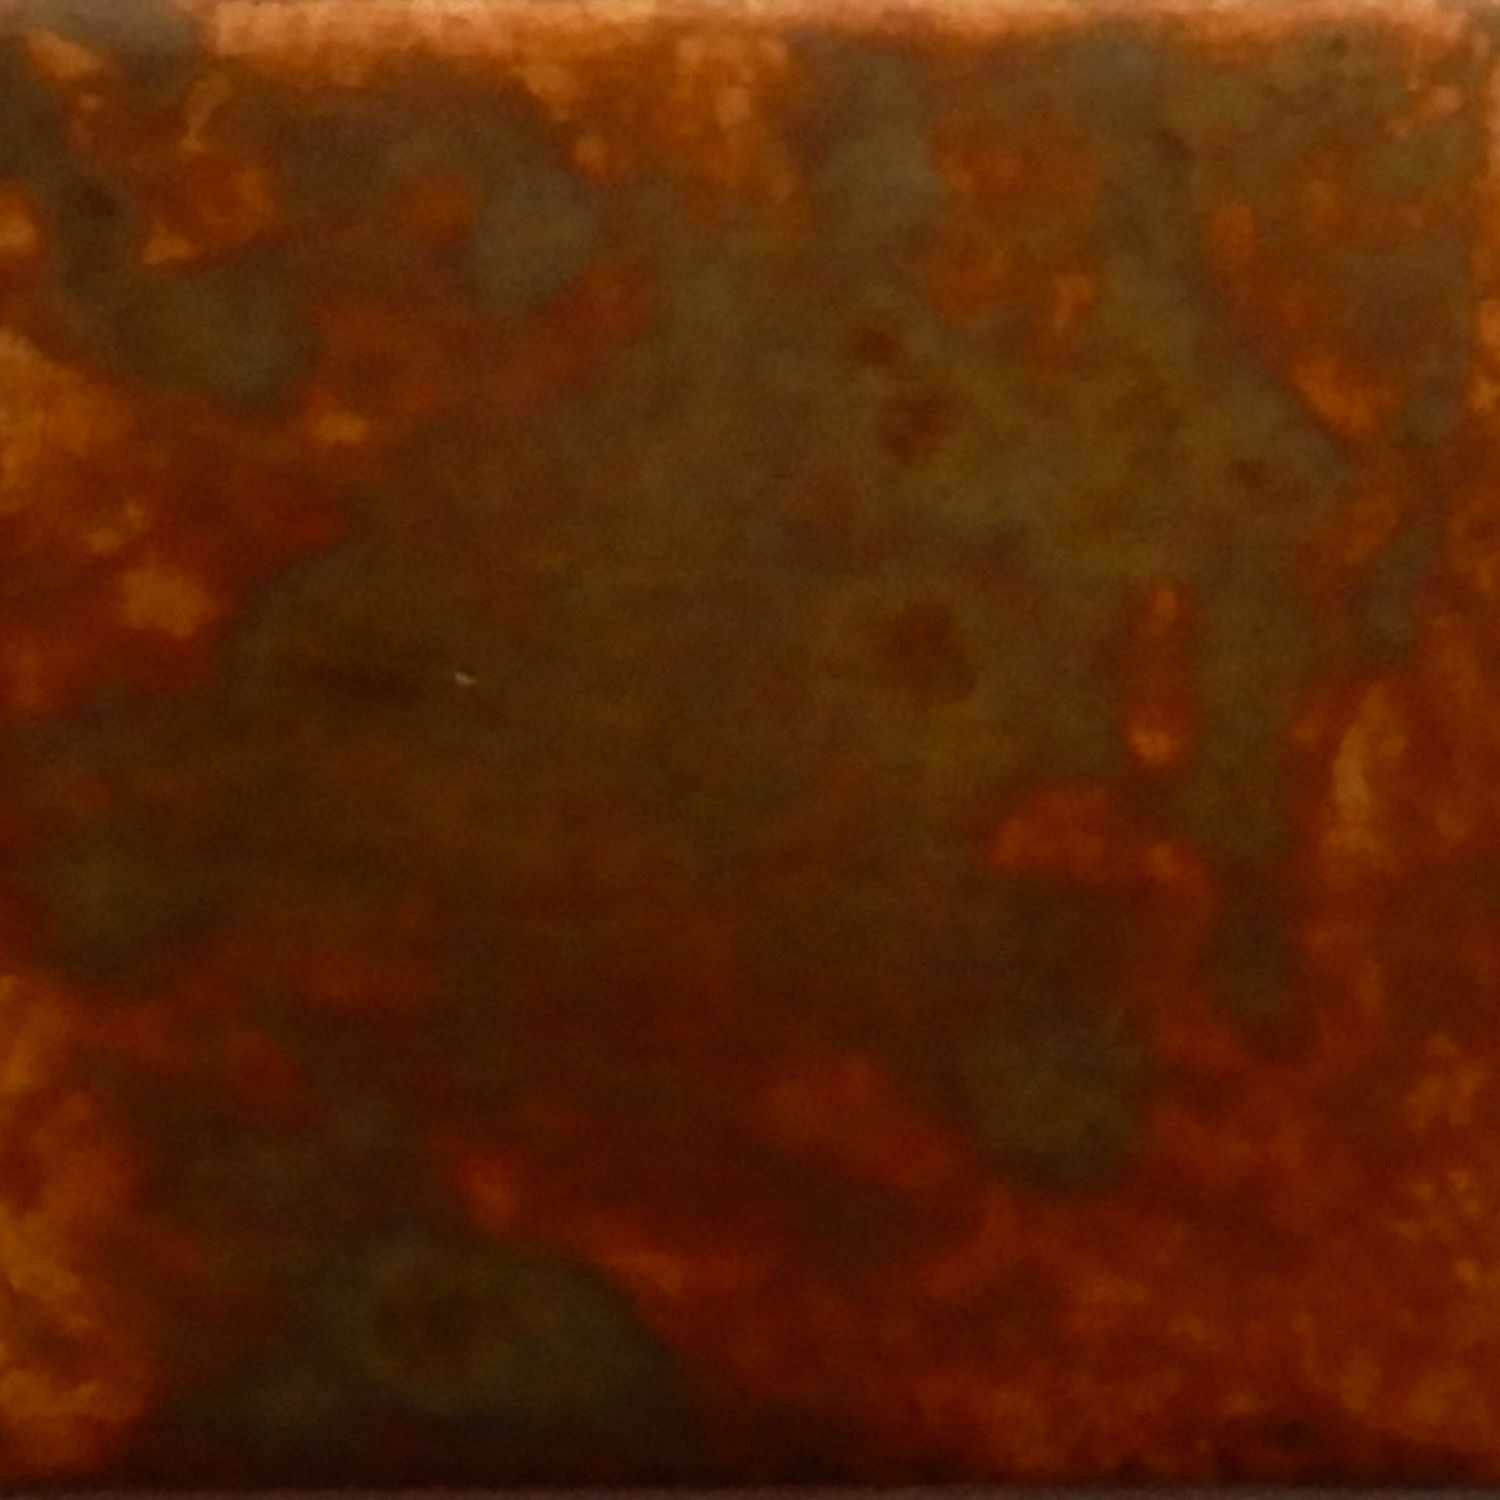 Annealed and sanded by sandpaper. Diluted liver of sulfur added to the surface. Size: 1 x 1 in